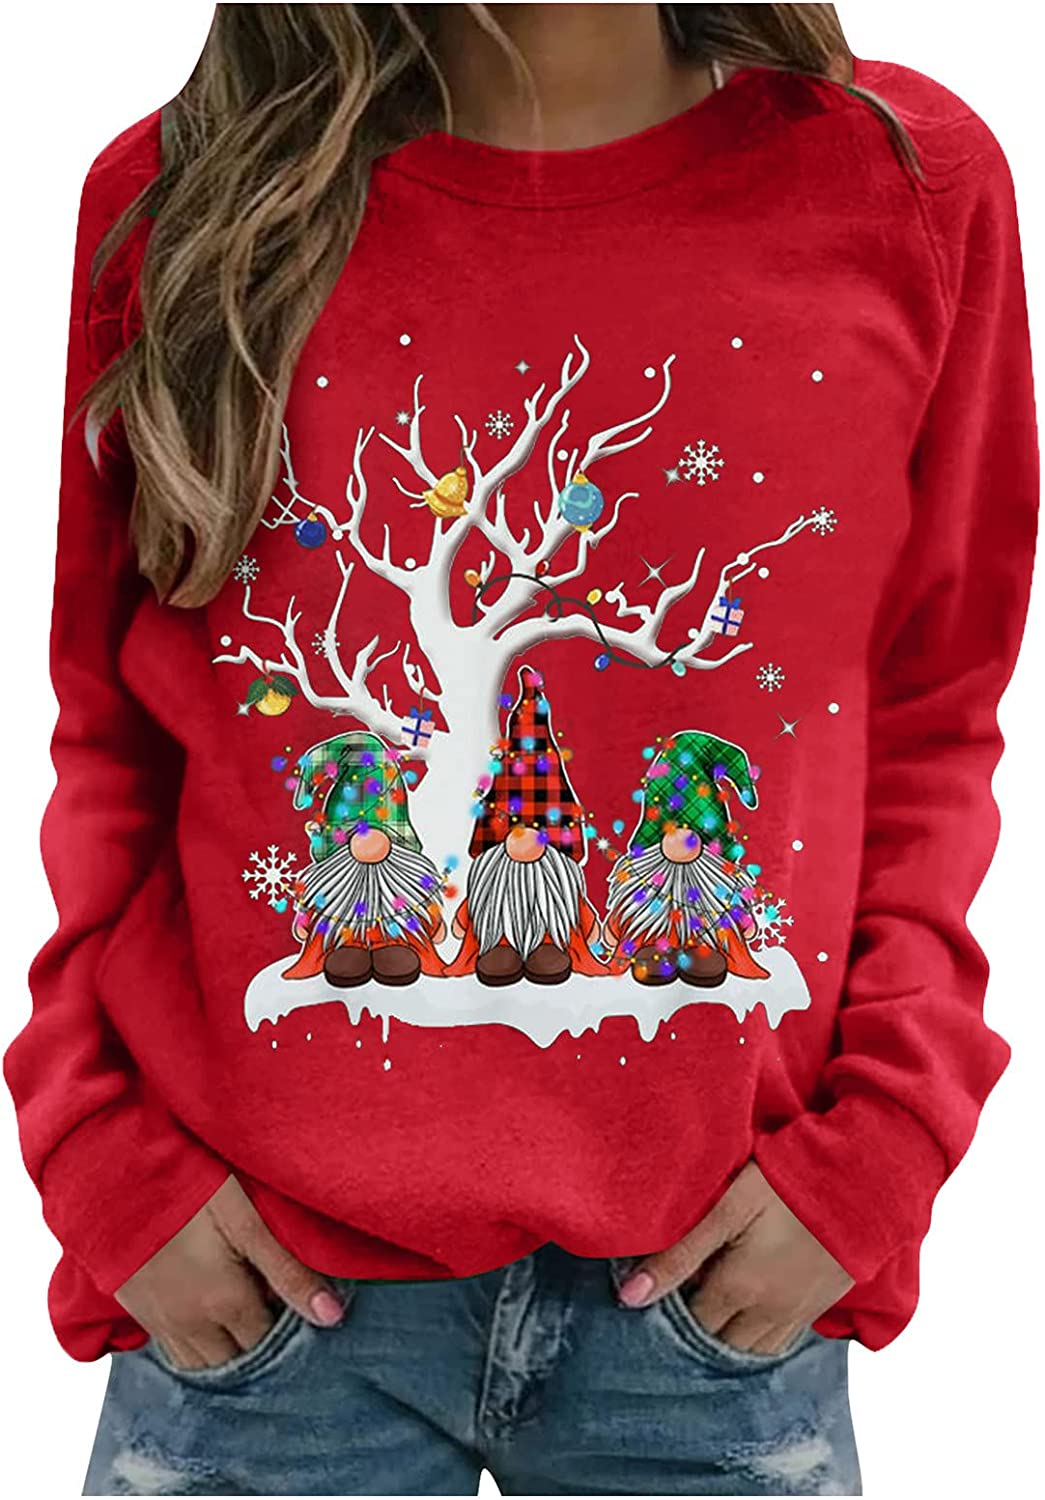 YALFJV Sweatshirts for Women Funny Christmas Print Crewneck Pullover Casual Loose Long Sleeve Sweaters Shirts Tops Blouse